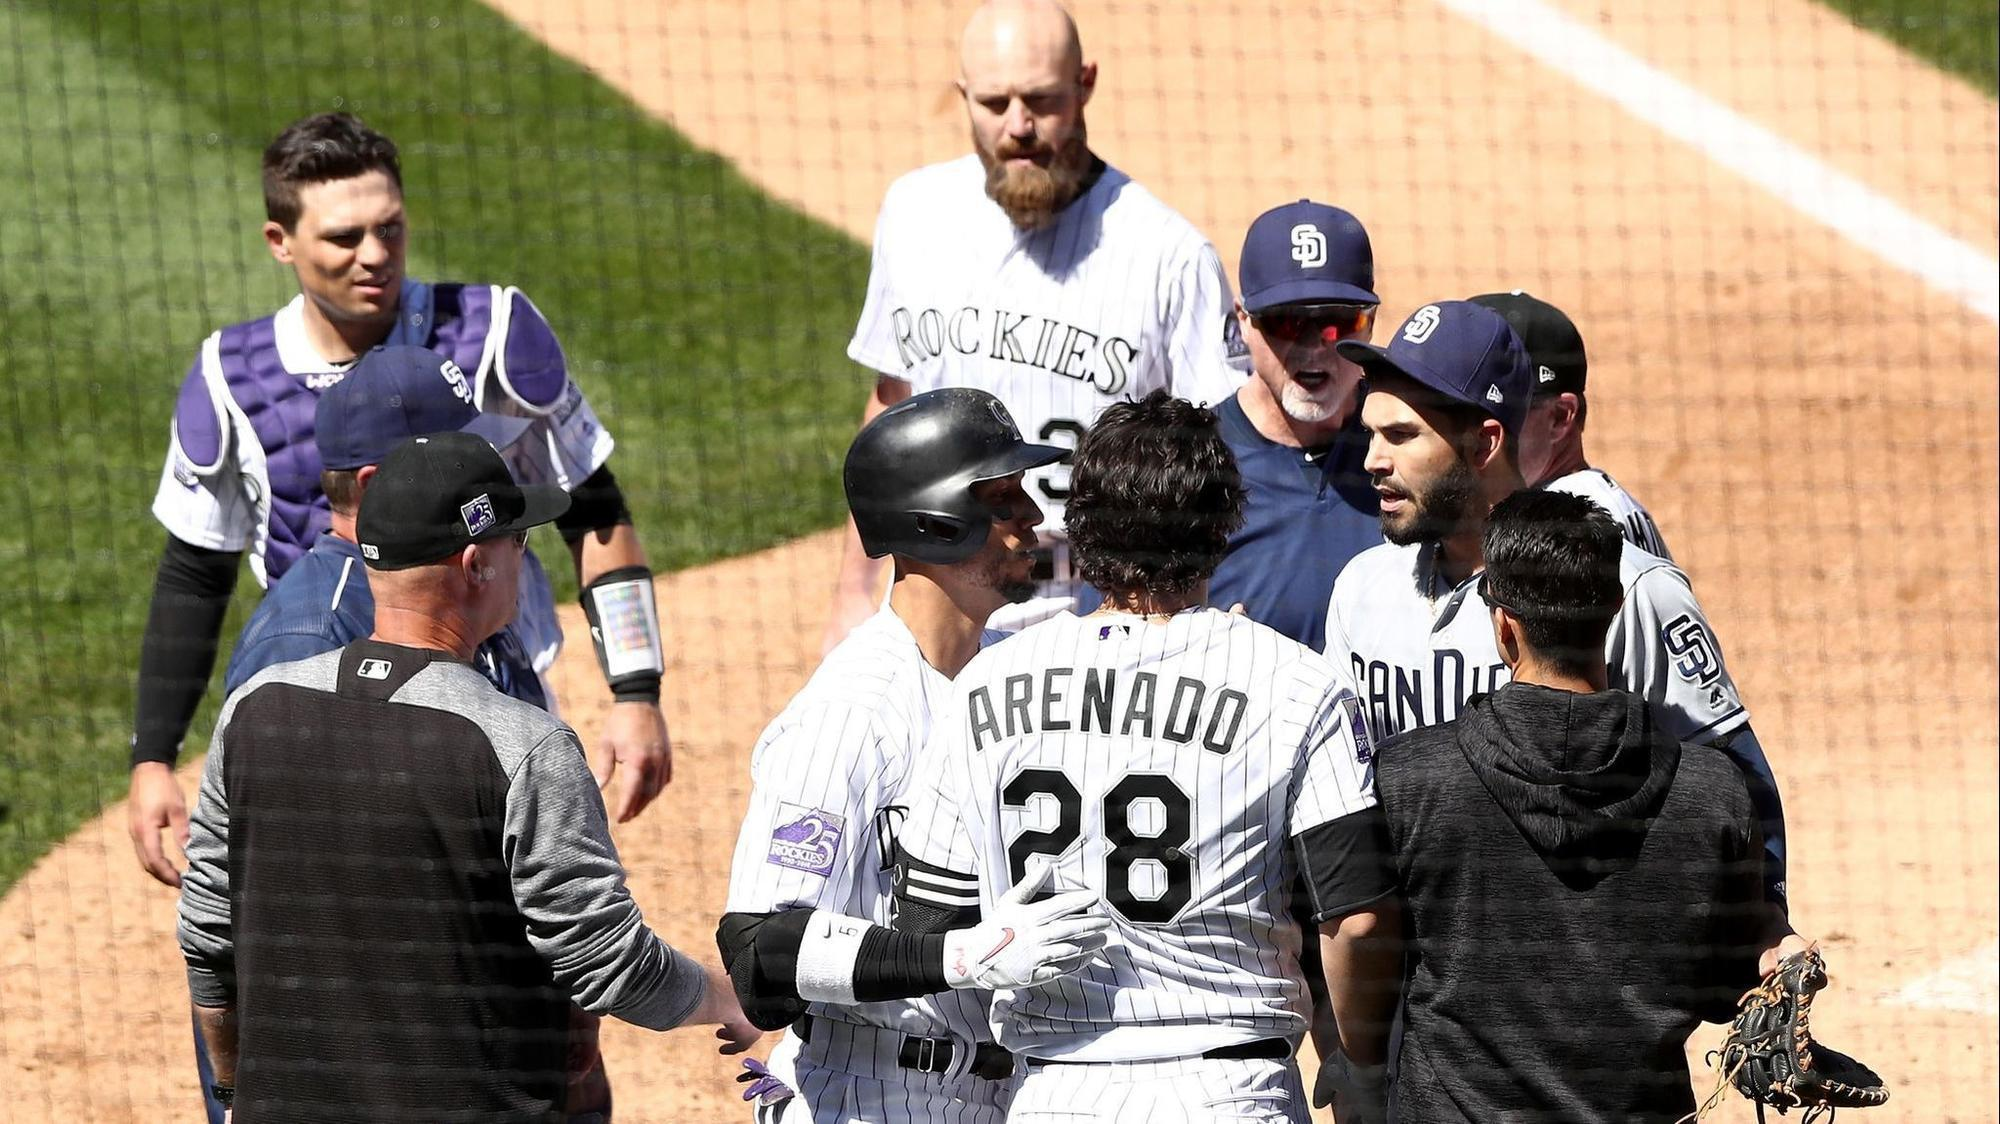 Sd-sp-padres-rockies-brawl-ellis-arenado-parra-suspension-0422